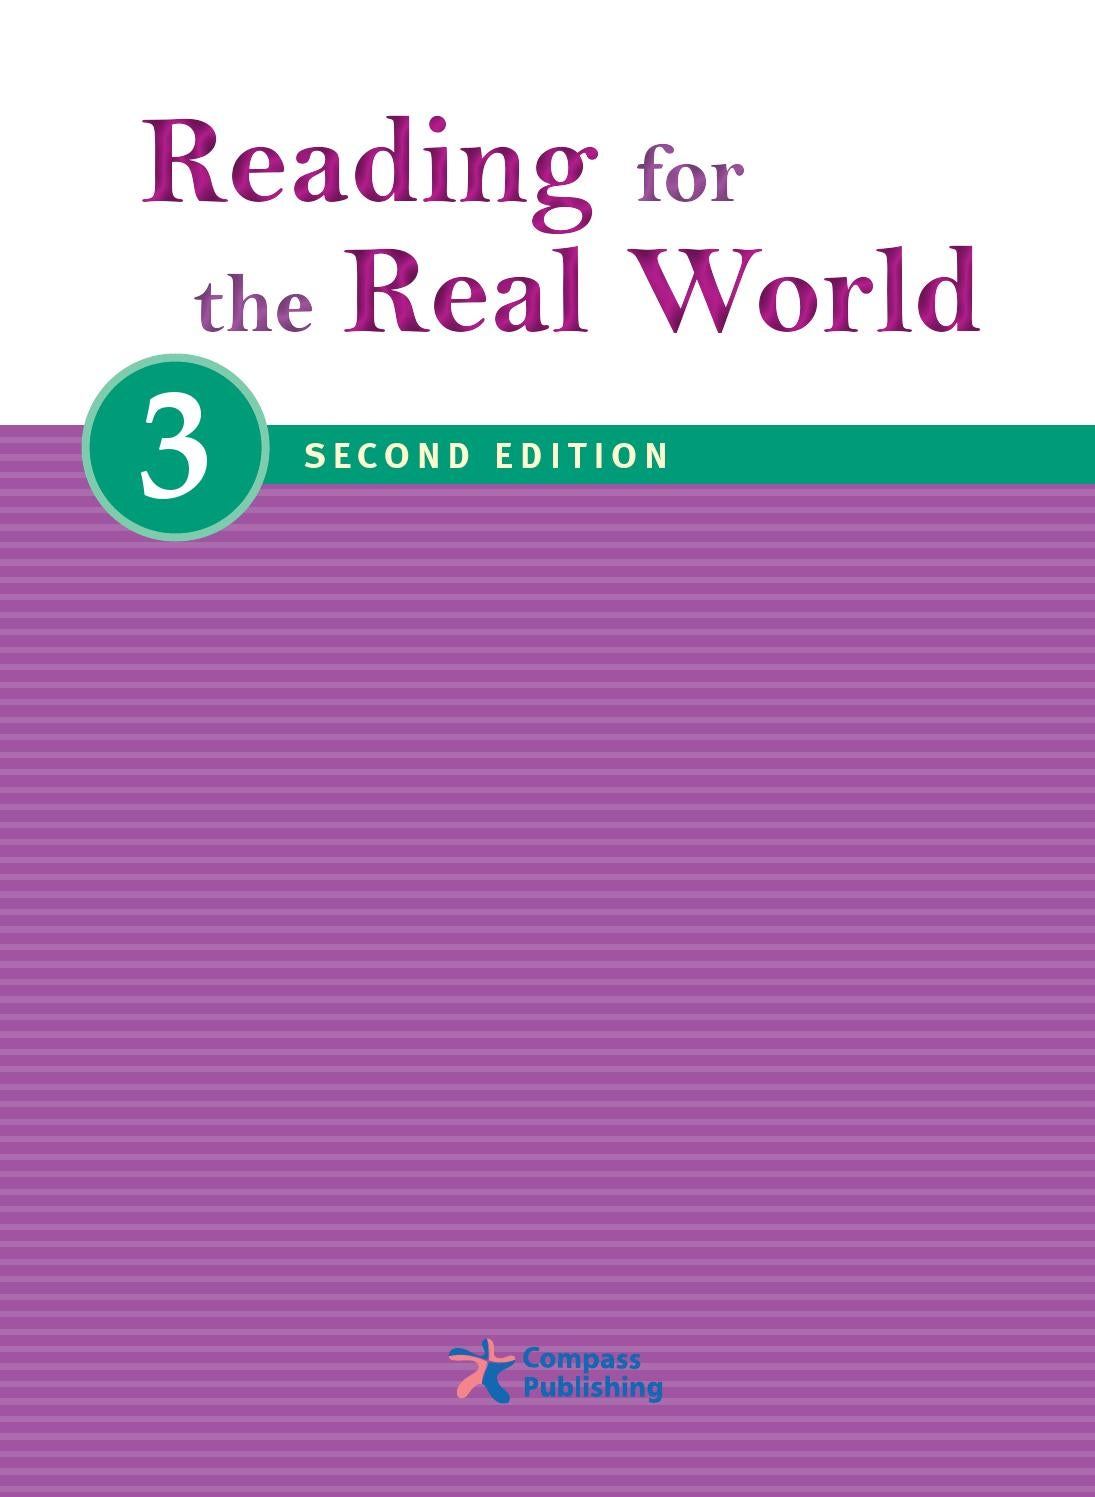 Reading for the Real World 3 by Ale Xander - issuu